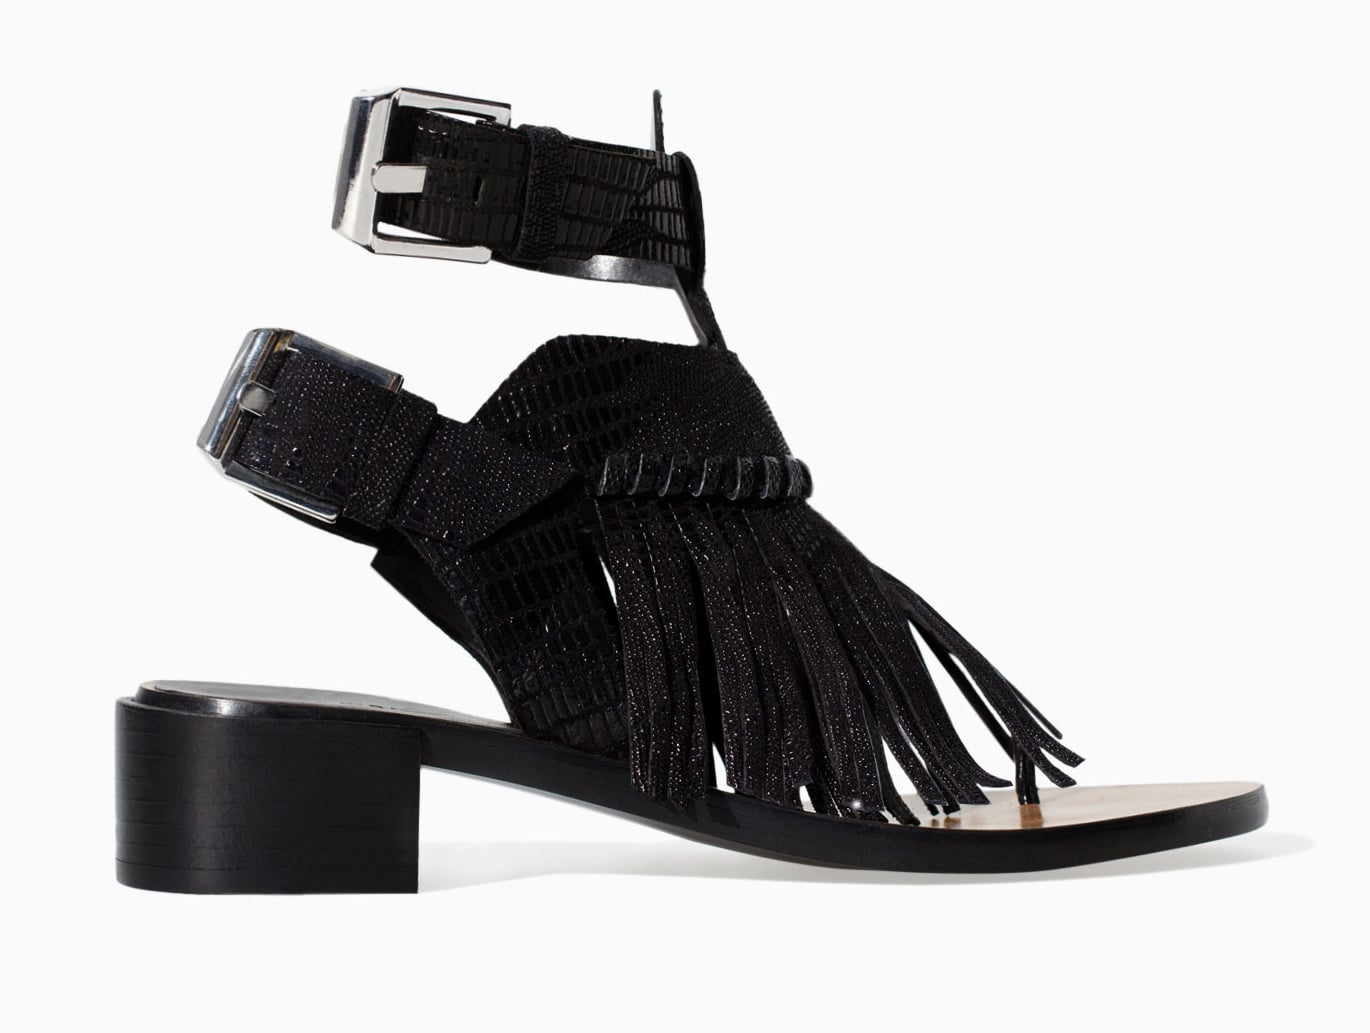 Zara black leather ankle-strap sandals with fringe ($100)